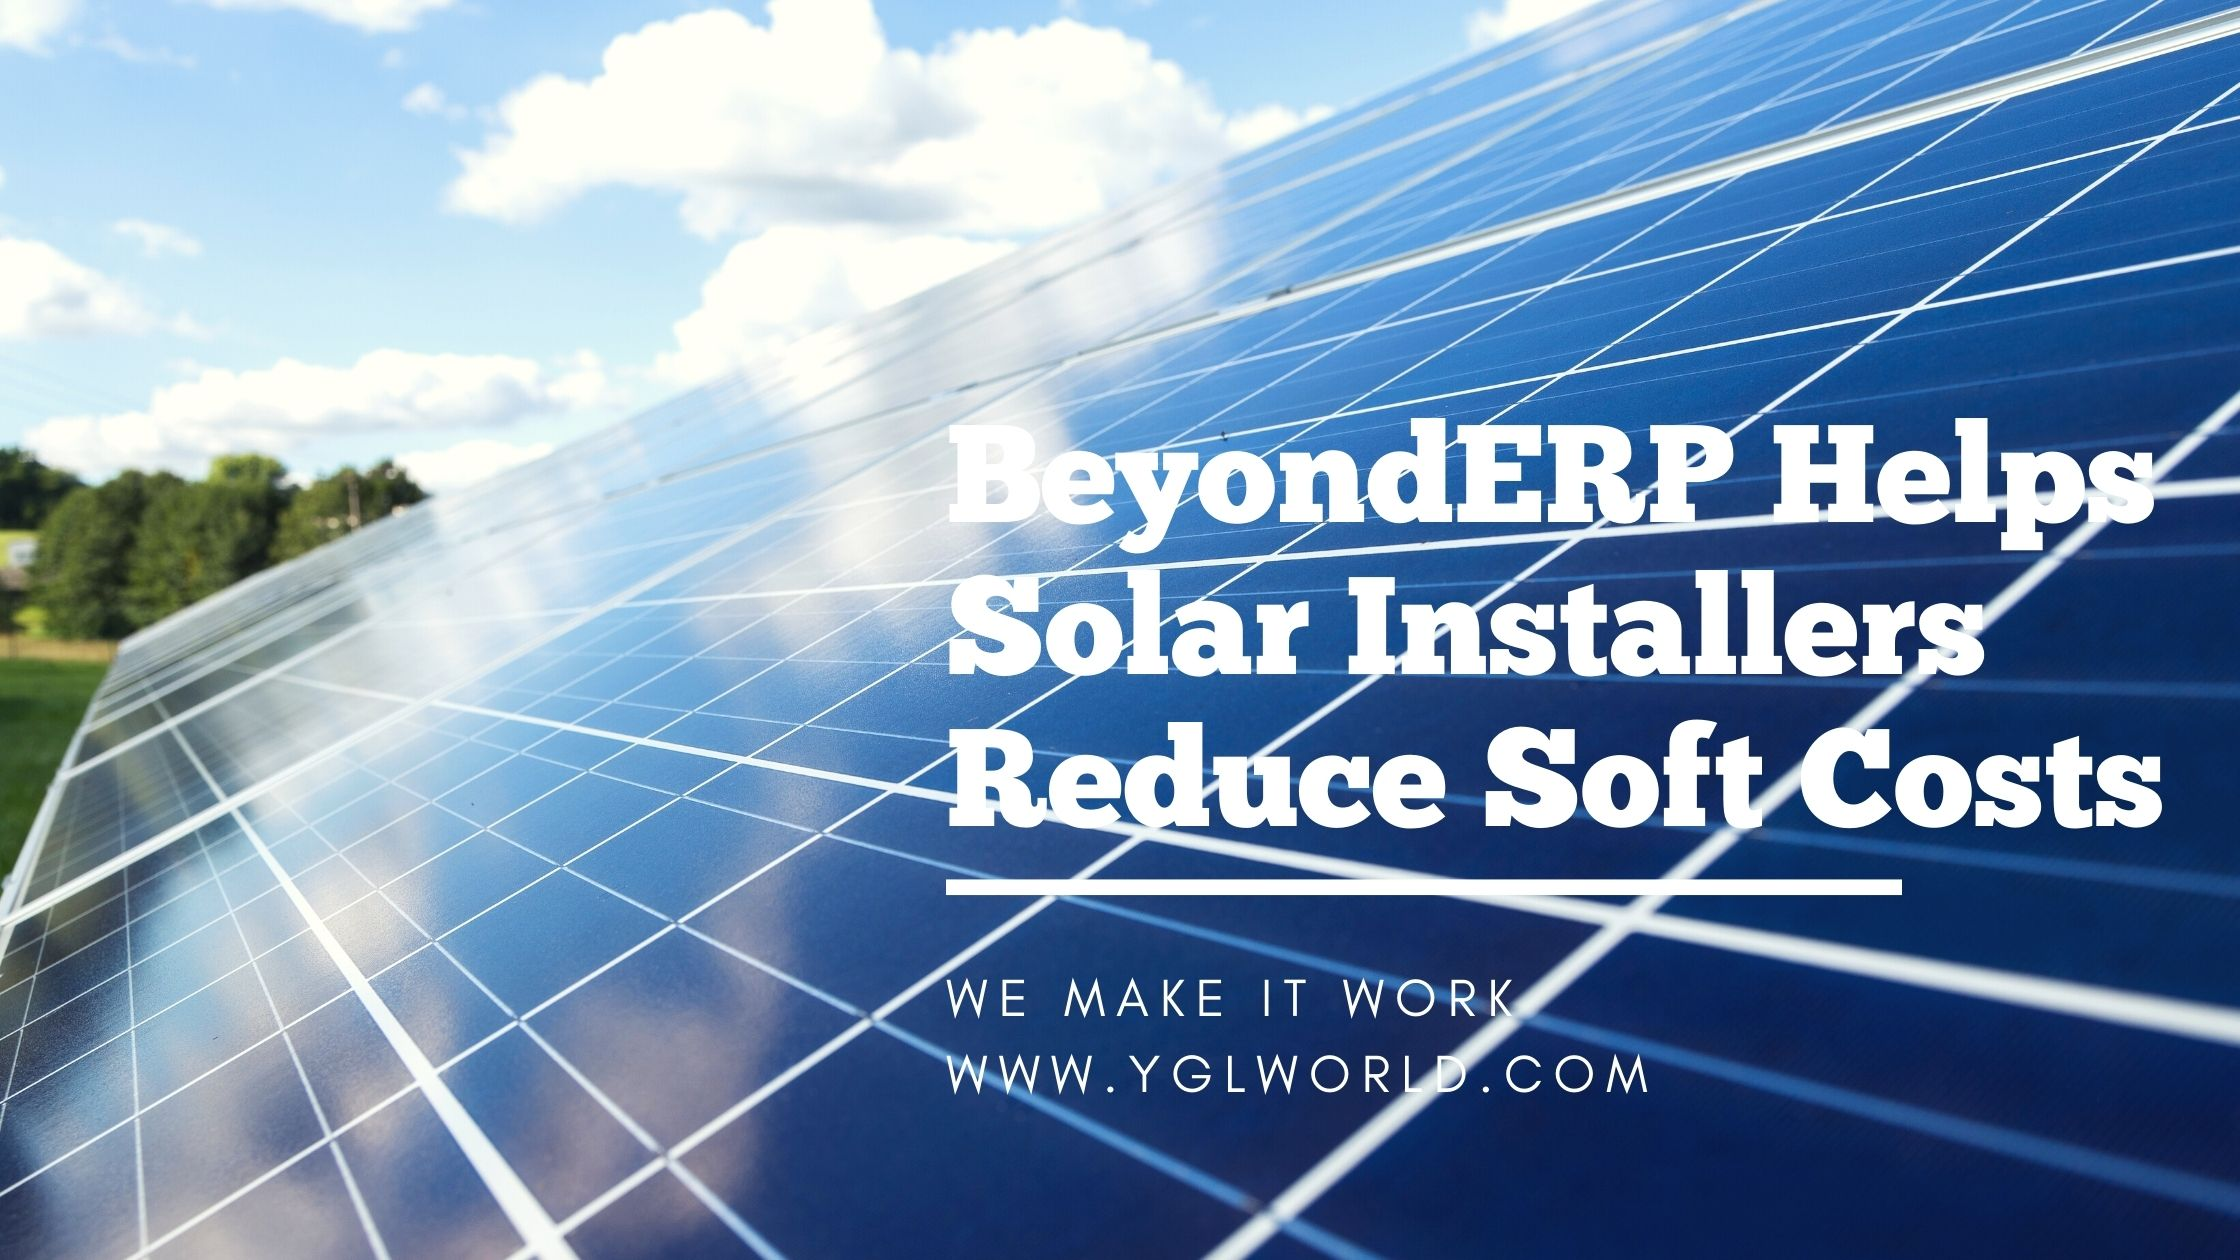 BeyondERP Helps Solar Installers Reduce Soft Costs